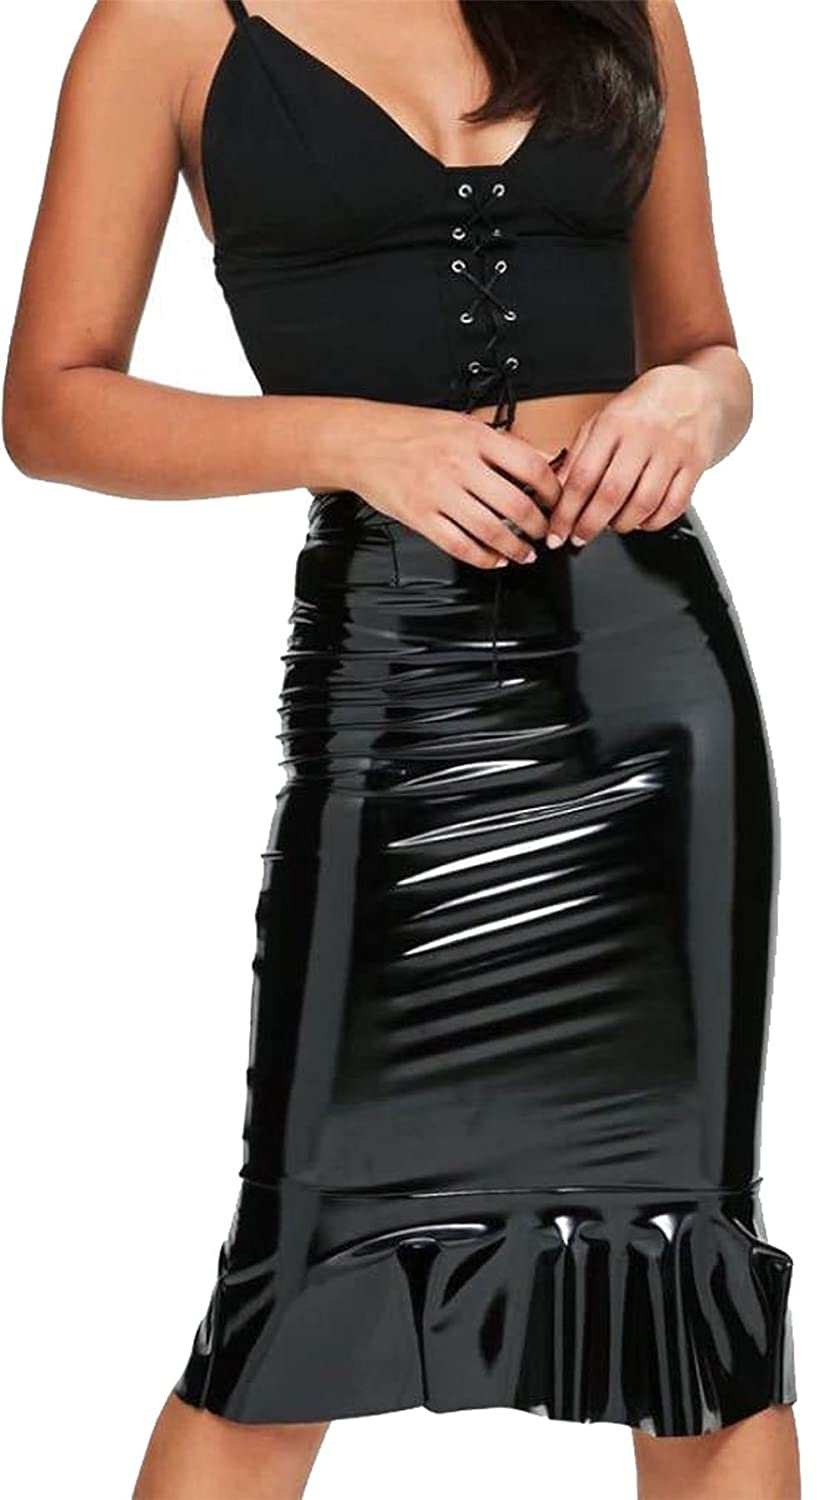 Womens Wet Look Shiny Faux Frill Midi Skirt Ladies PVC Pencil Leather Skirt FASHION FAIRIES